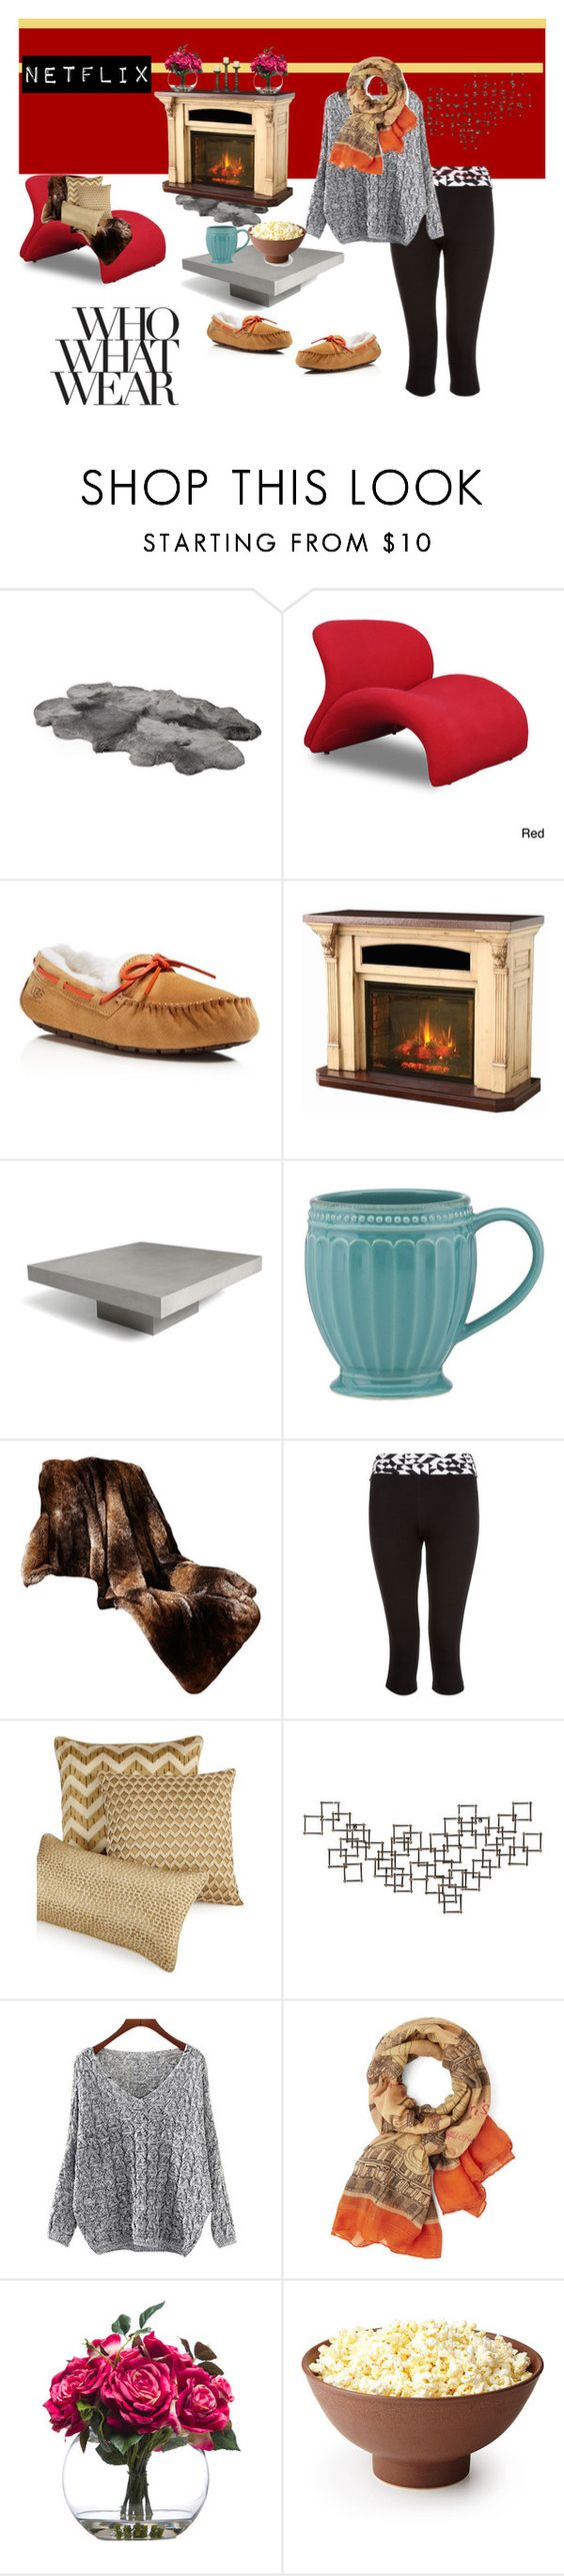 """""""netflix night"""" by pricealeigha on Polyvore featuring Ceets, UGG Australia, DutchCrafters, Lenox, Hotel Collection, Crate and Barrel and Lux-Art Silks"""